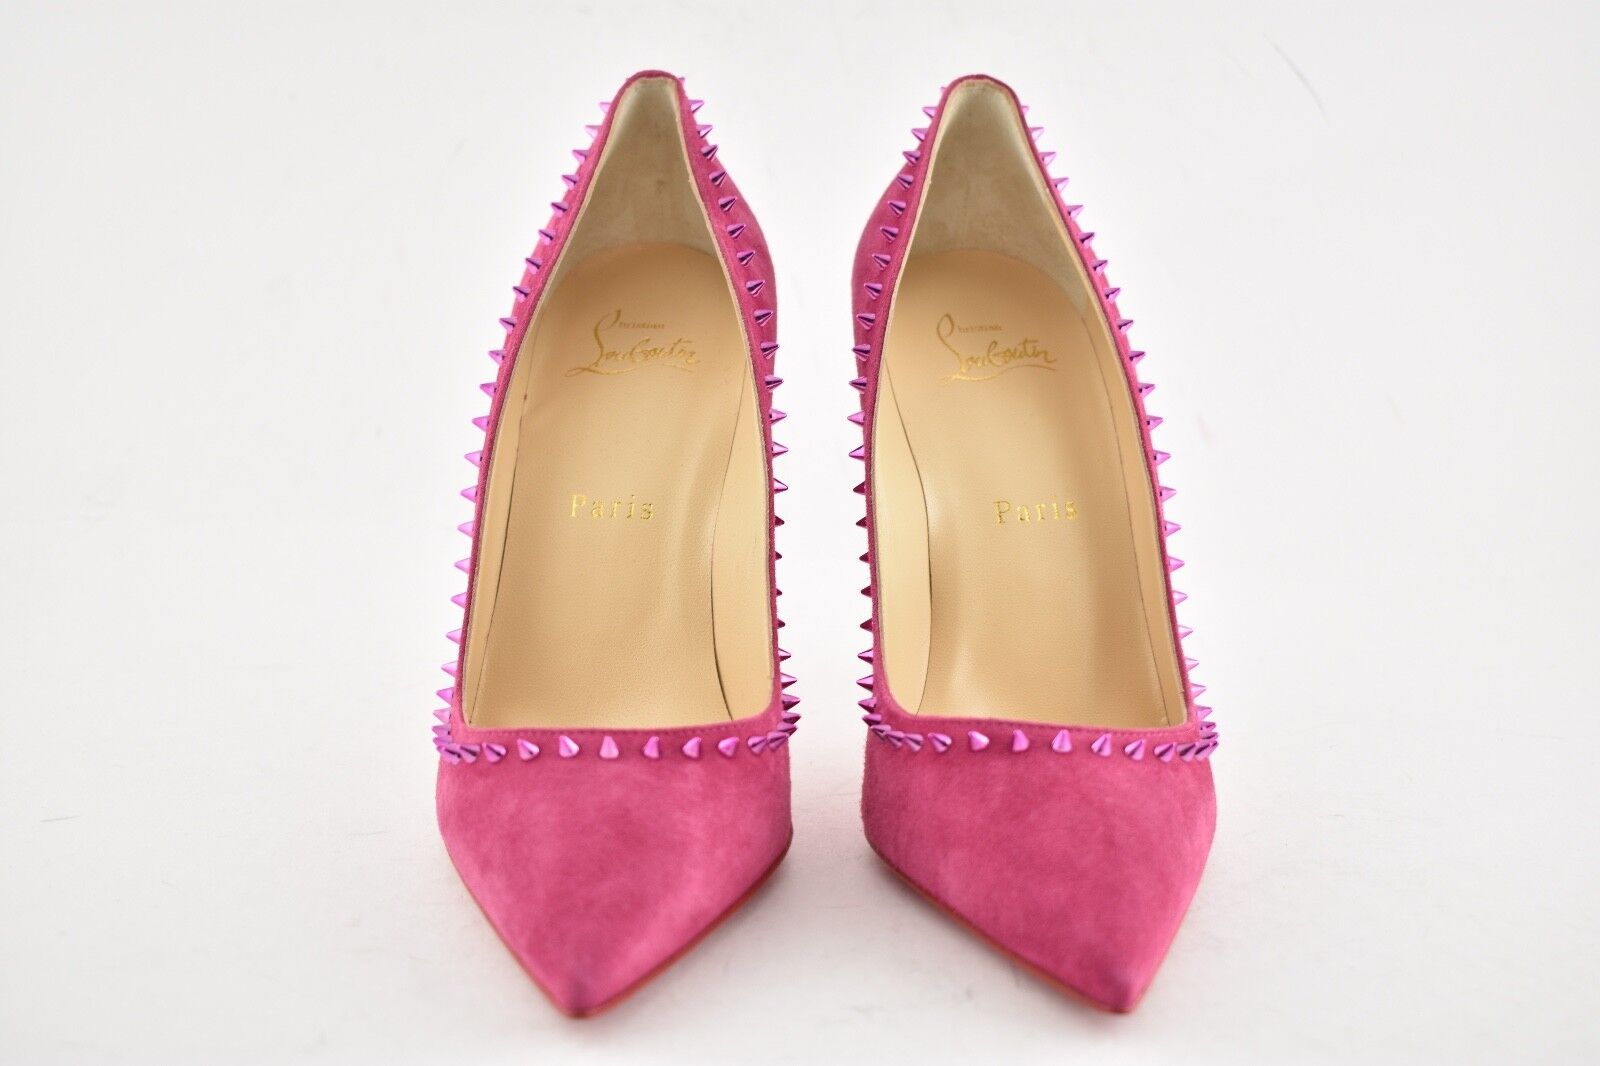 NB Christian Louboutin Anjalina 100 Loulou rose Suede Suede Suede Fuxia Spike Heel Pump 41.5 91bf6f